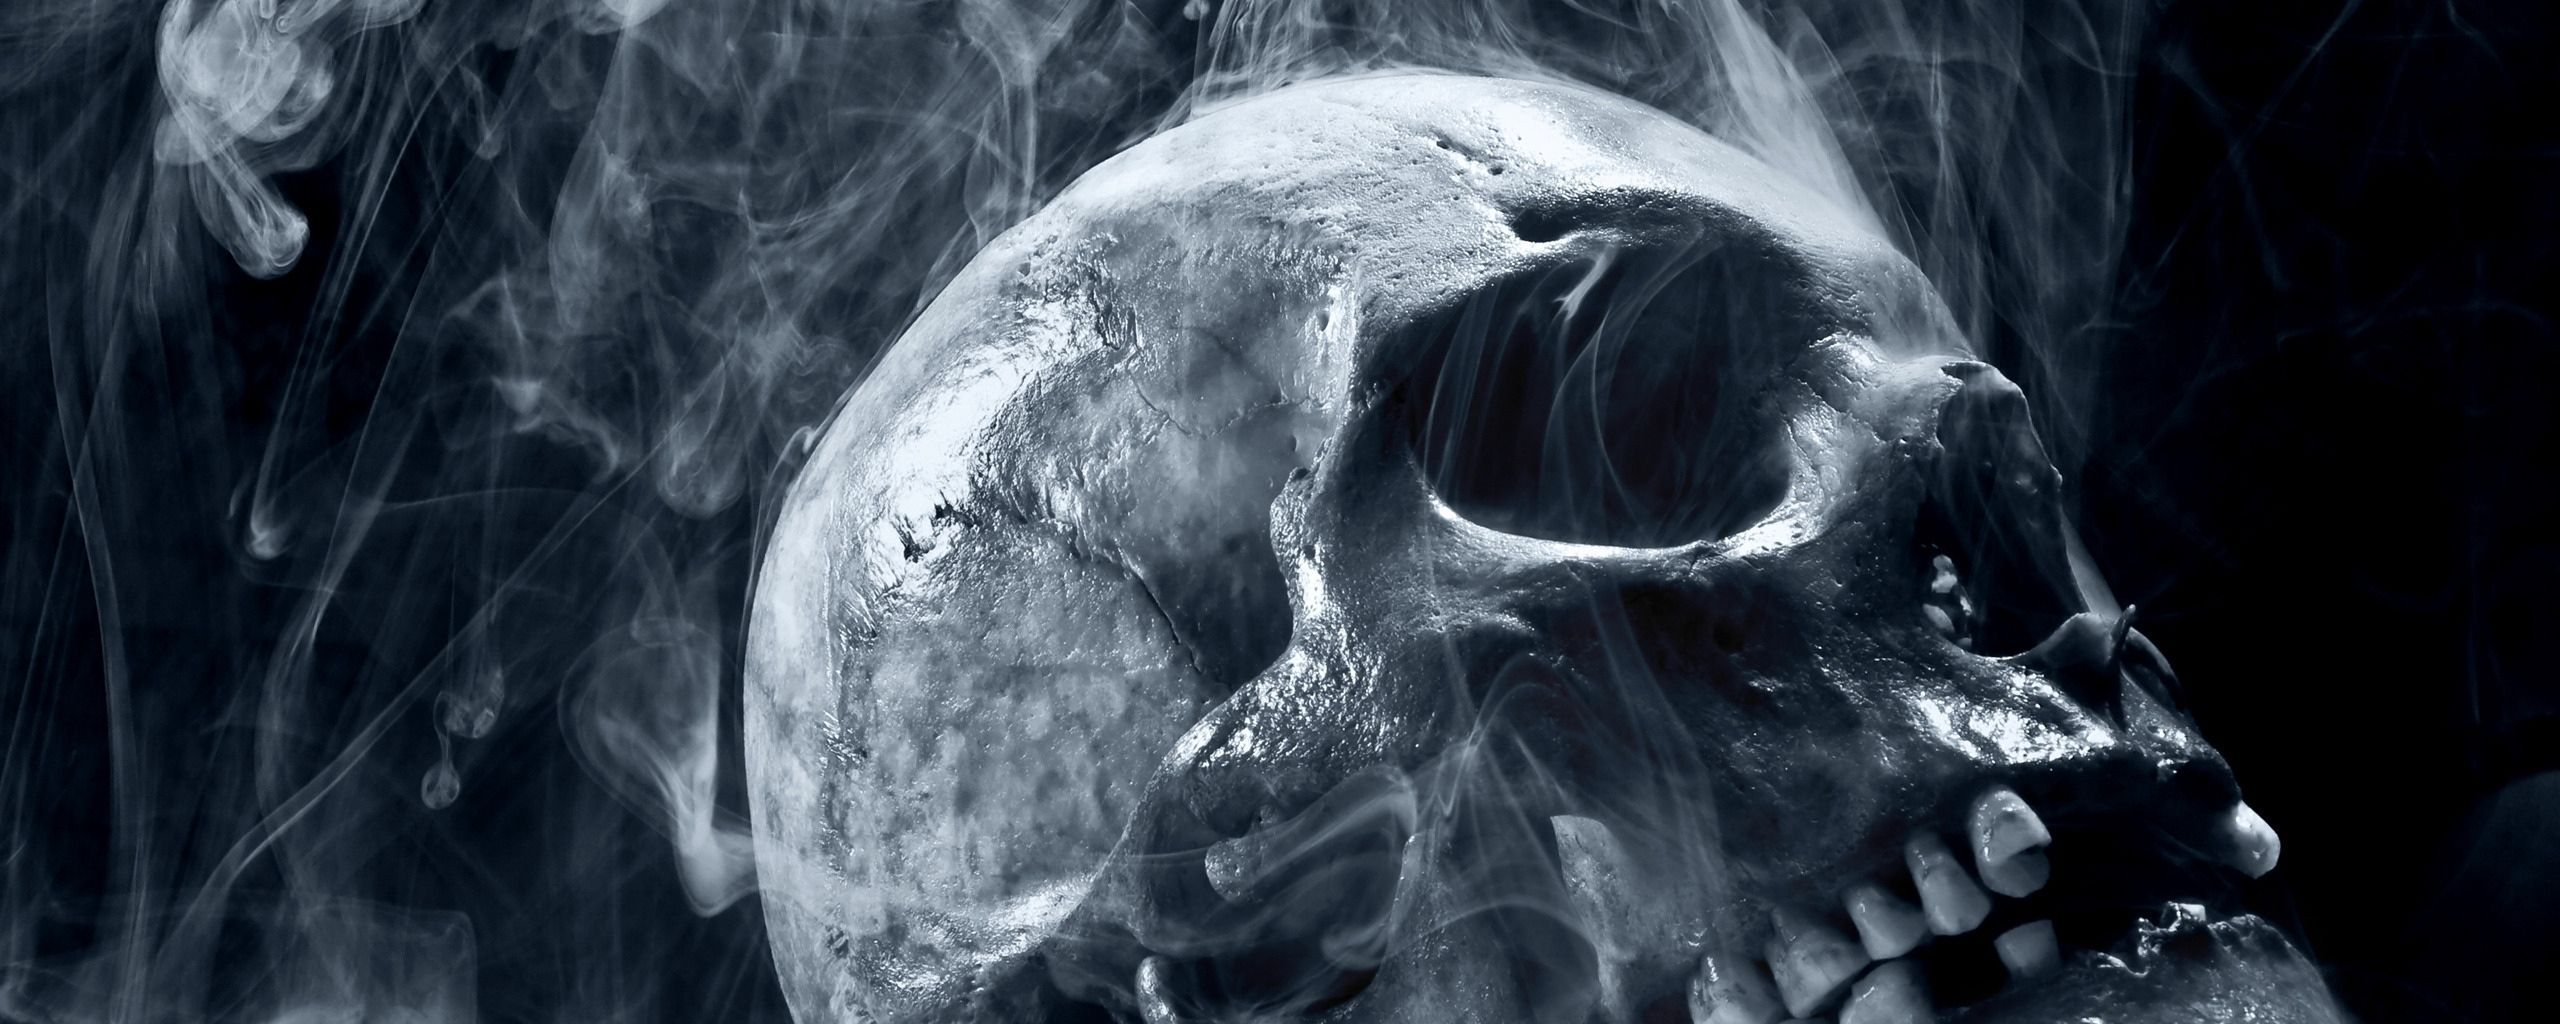 Blue scary death wallpaper background dual monitor - Scary skull backgrounds ...